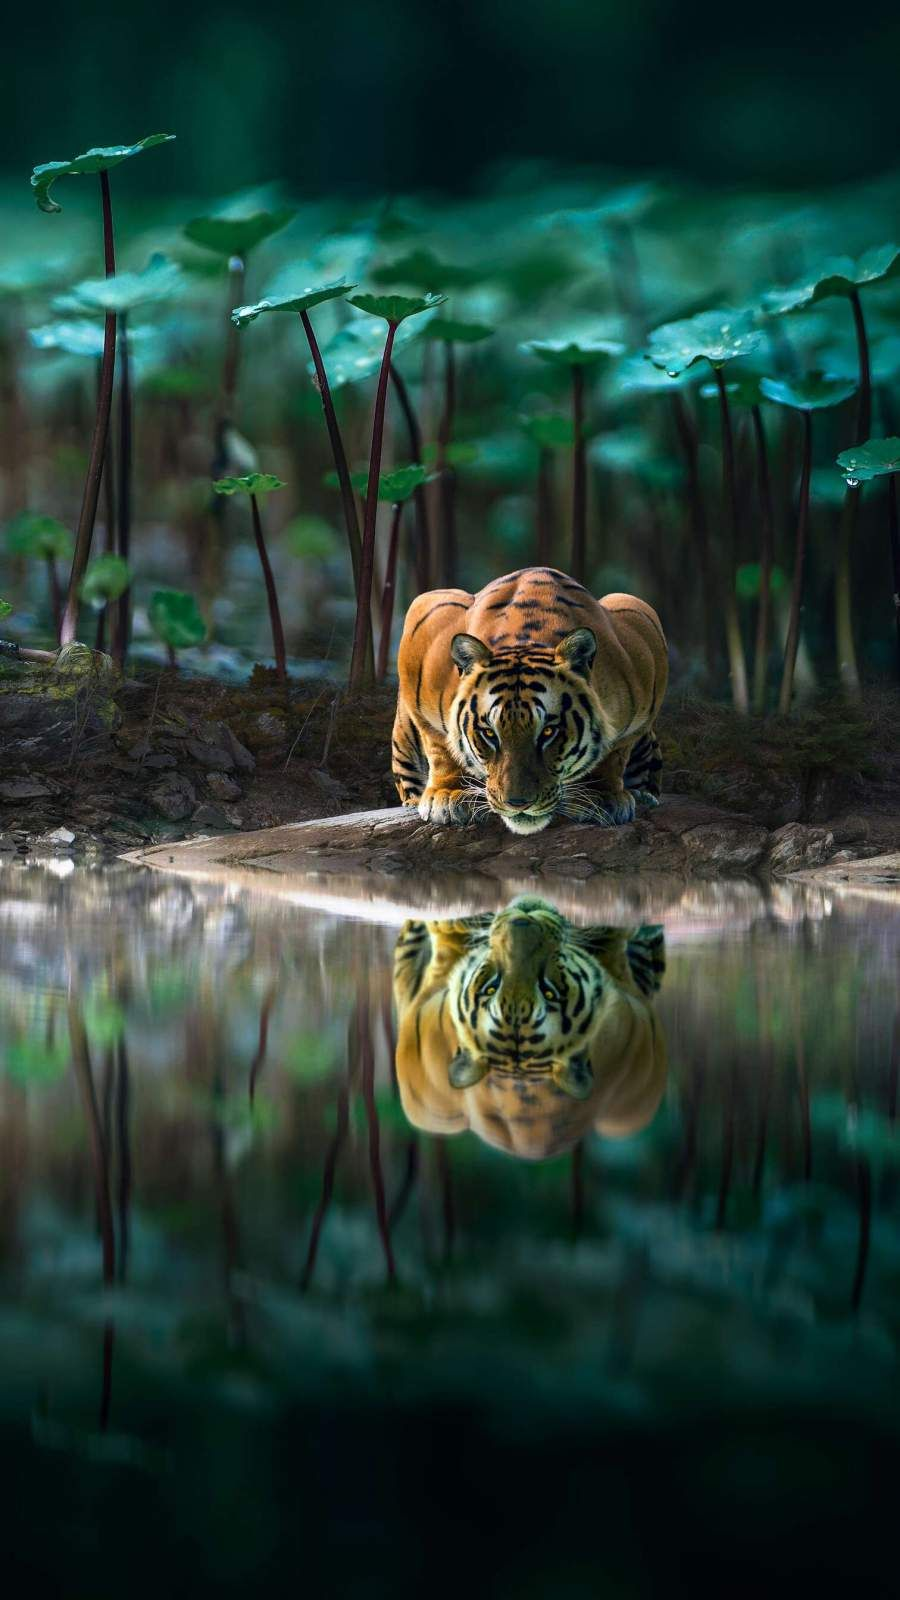 Tiger Reflection In Water Iphone Wallpaper Water Reflections Iphone Wallpaper Iphone Wallpaper Images